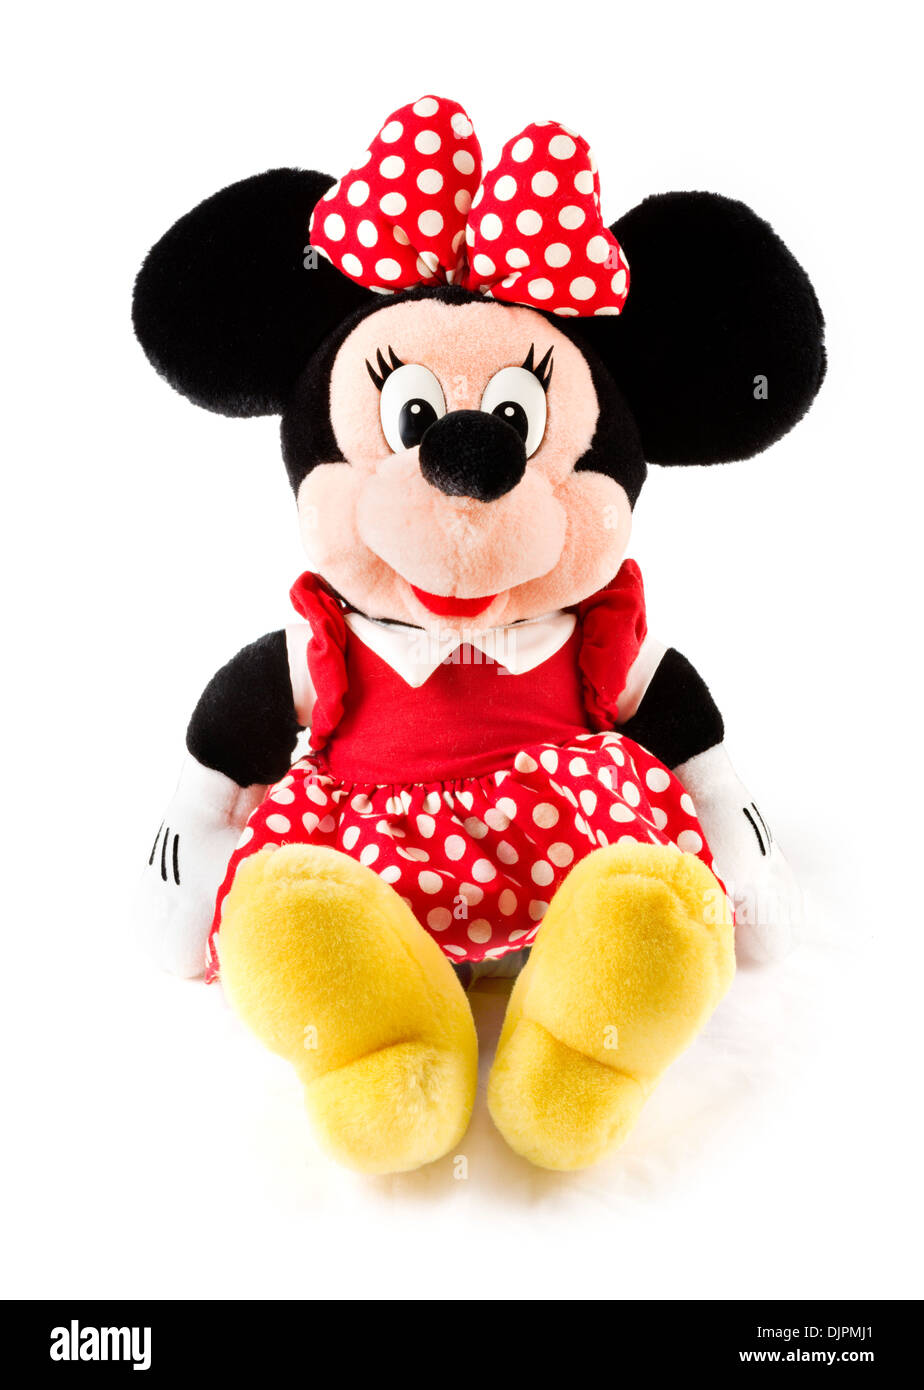 Minnie Mouse cuddly toy, USA - Stock Image